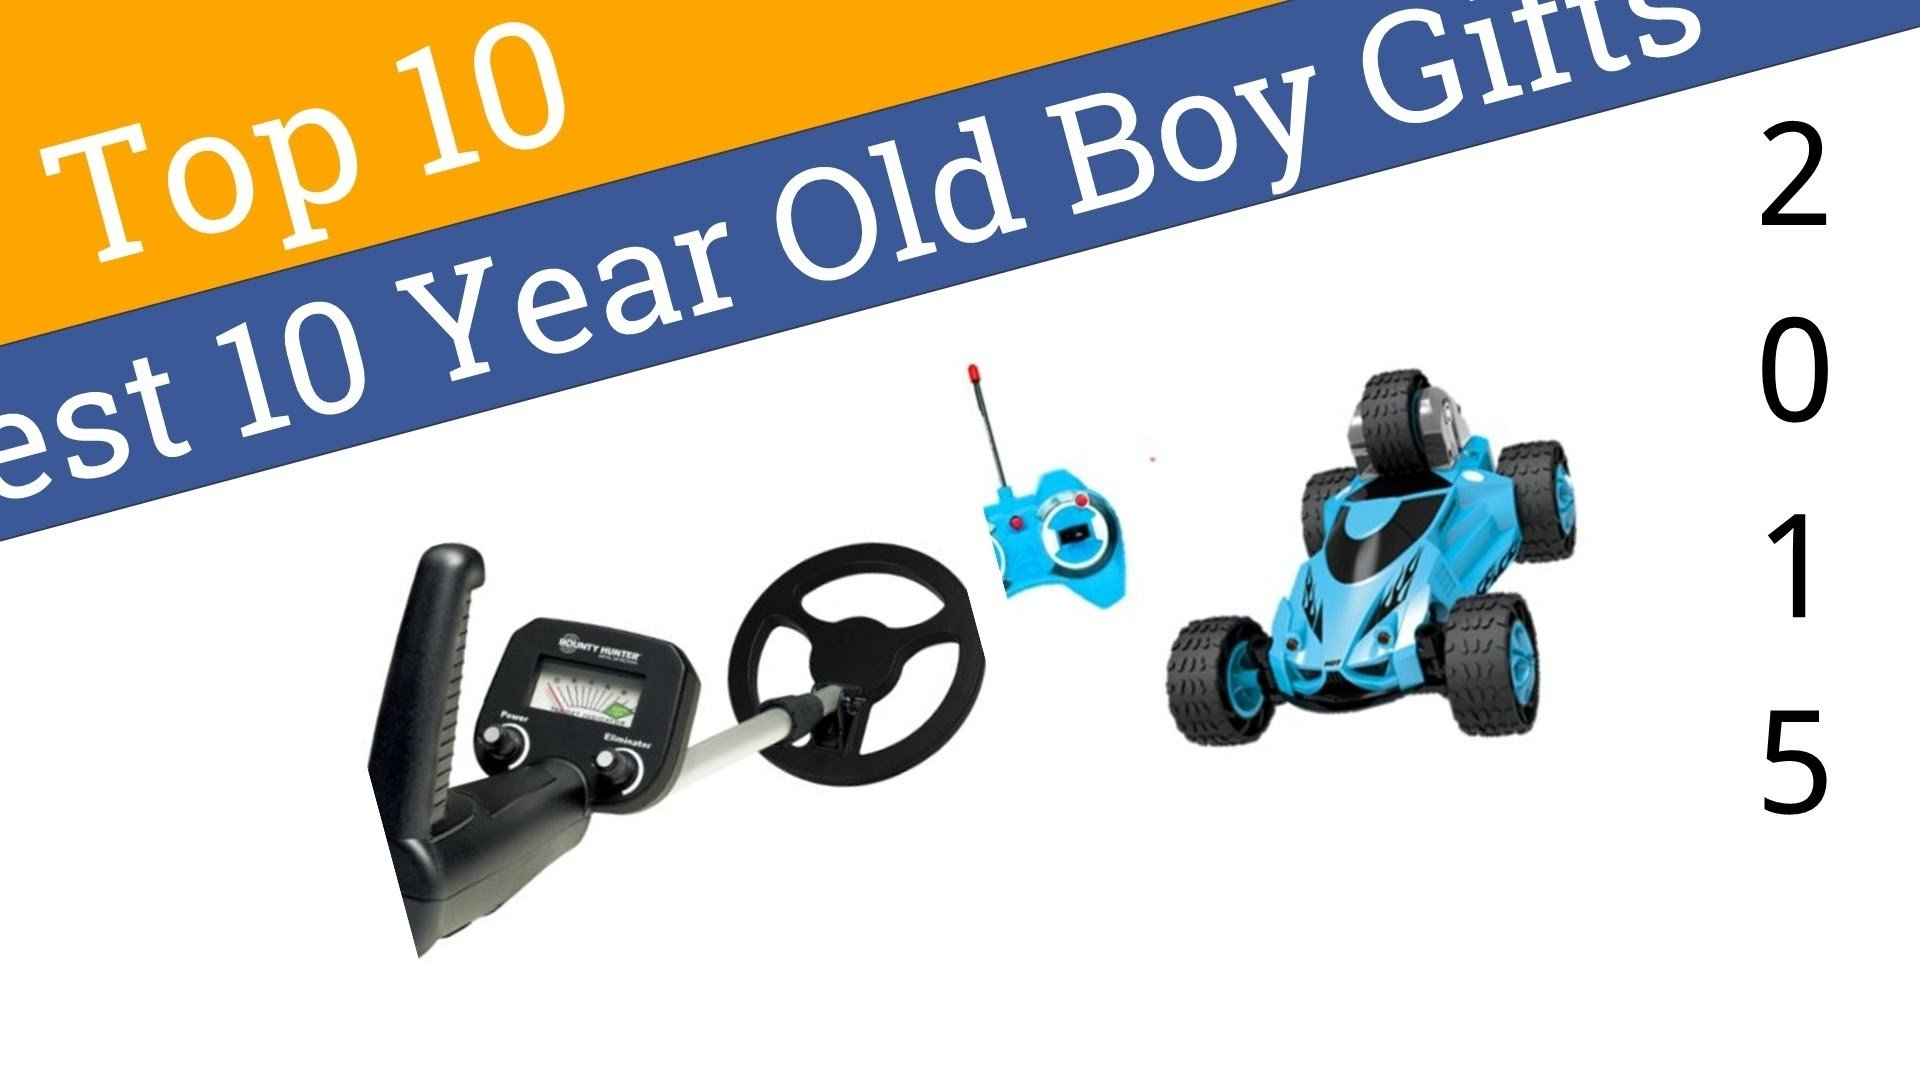 10 Stylish Gift Ideas For 10 Yr Old Boy 10 best 10 year old boy gifts 2015 youtube 6 2020